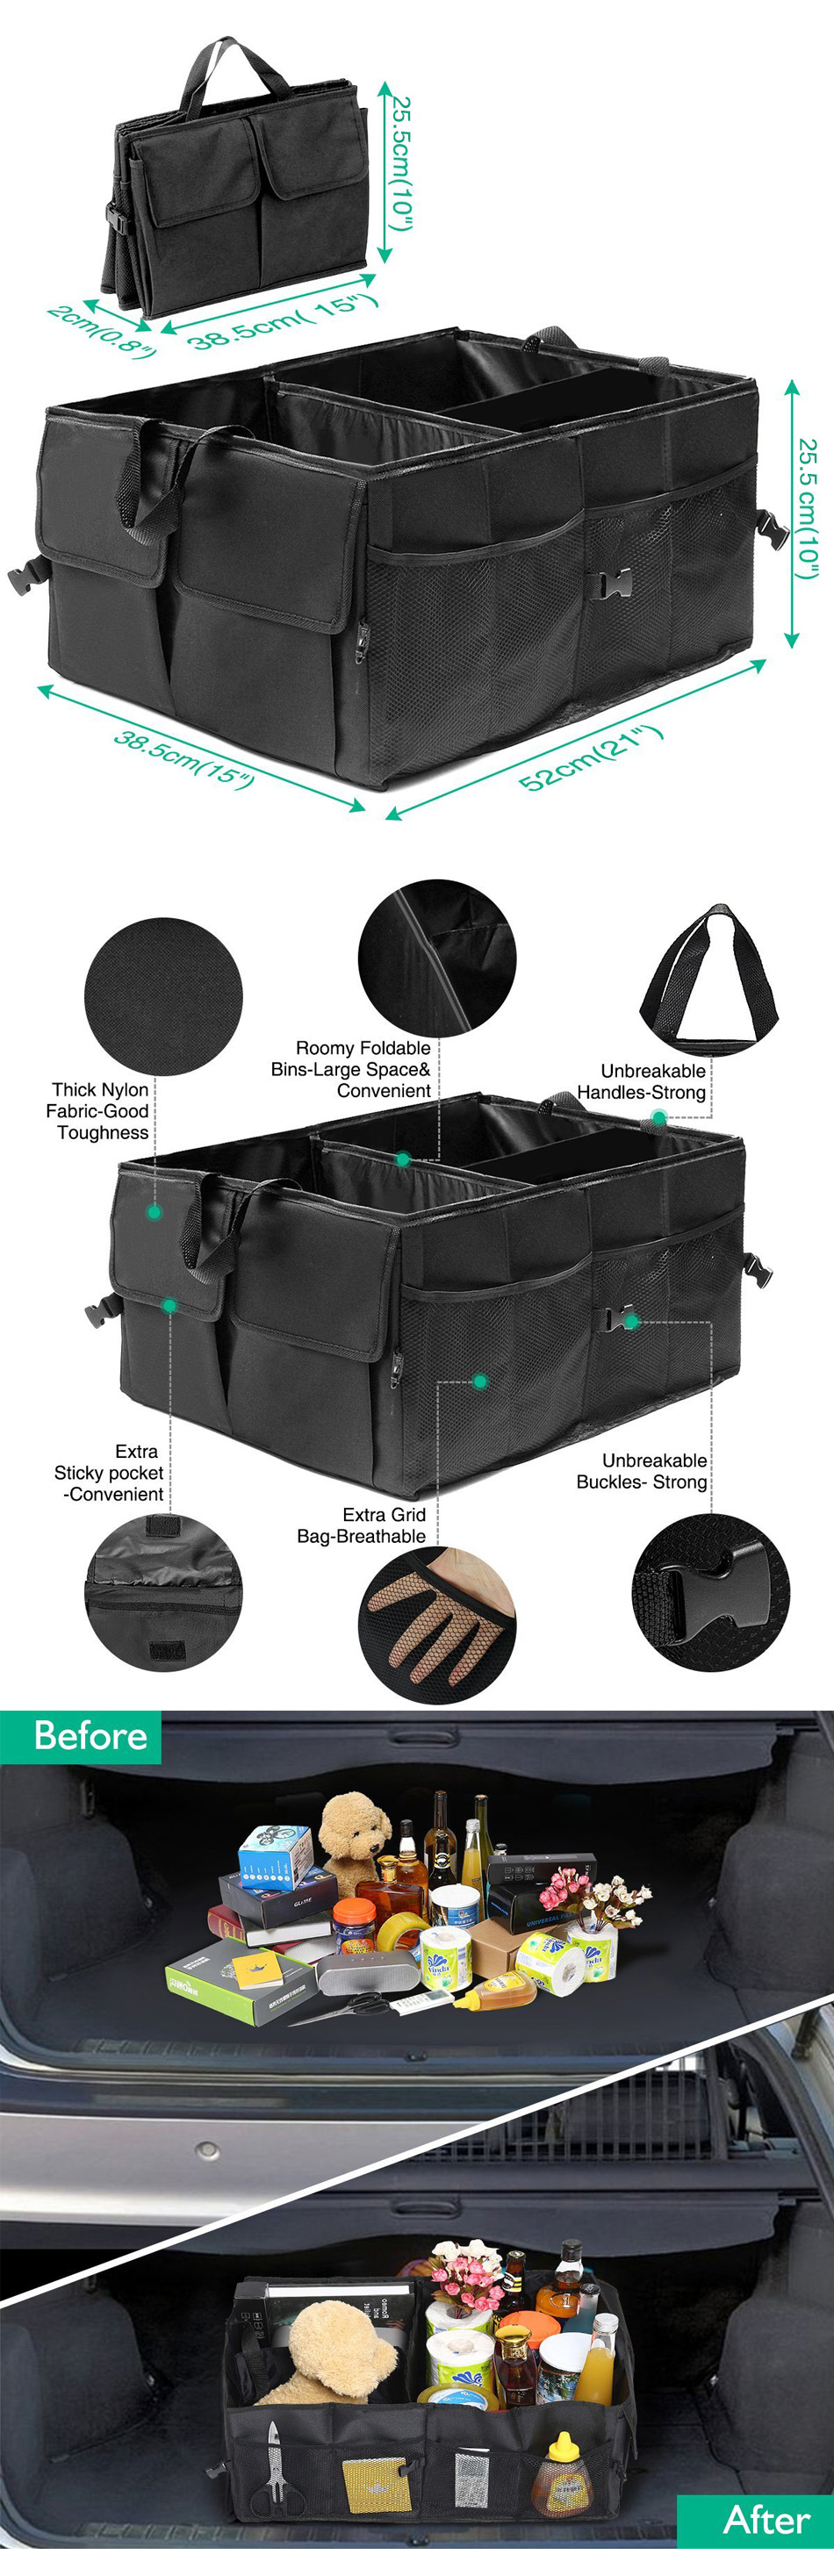 Foldable Car Rear Trunk Storage Bag Travel Organizer Holder Interior Big Capacity Box